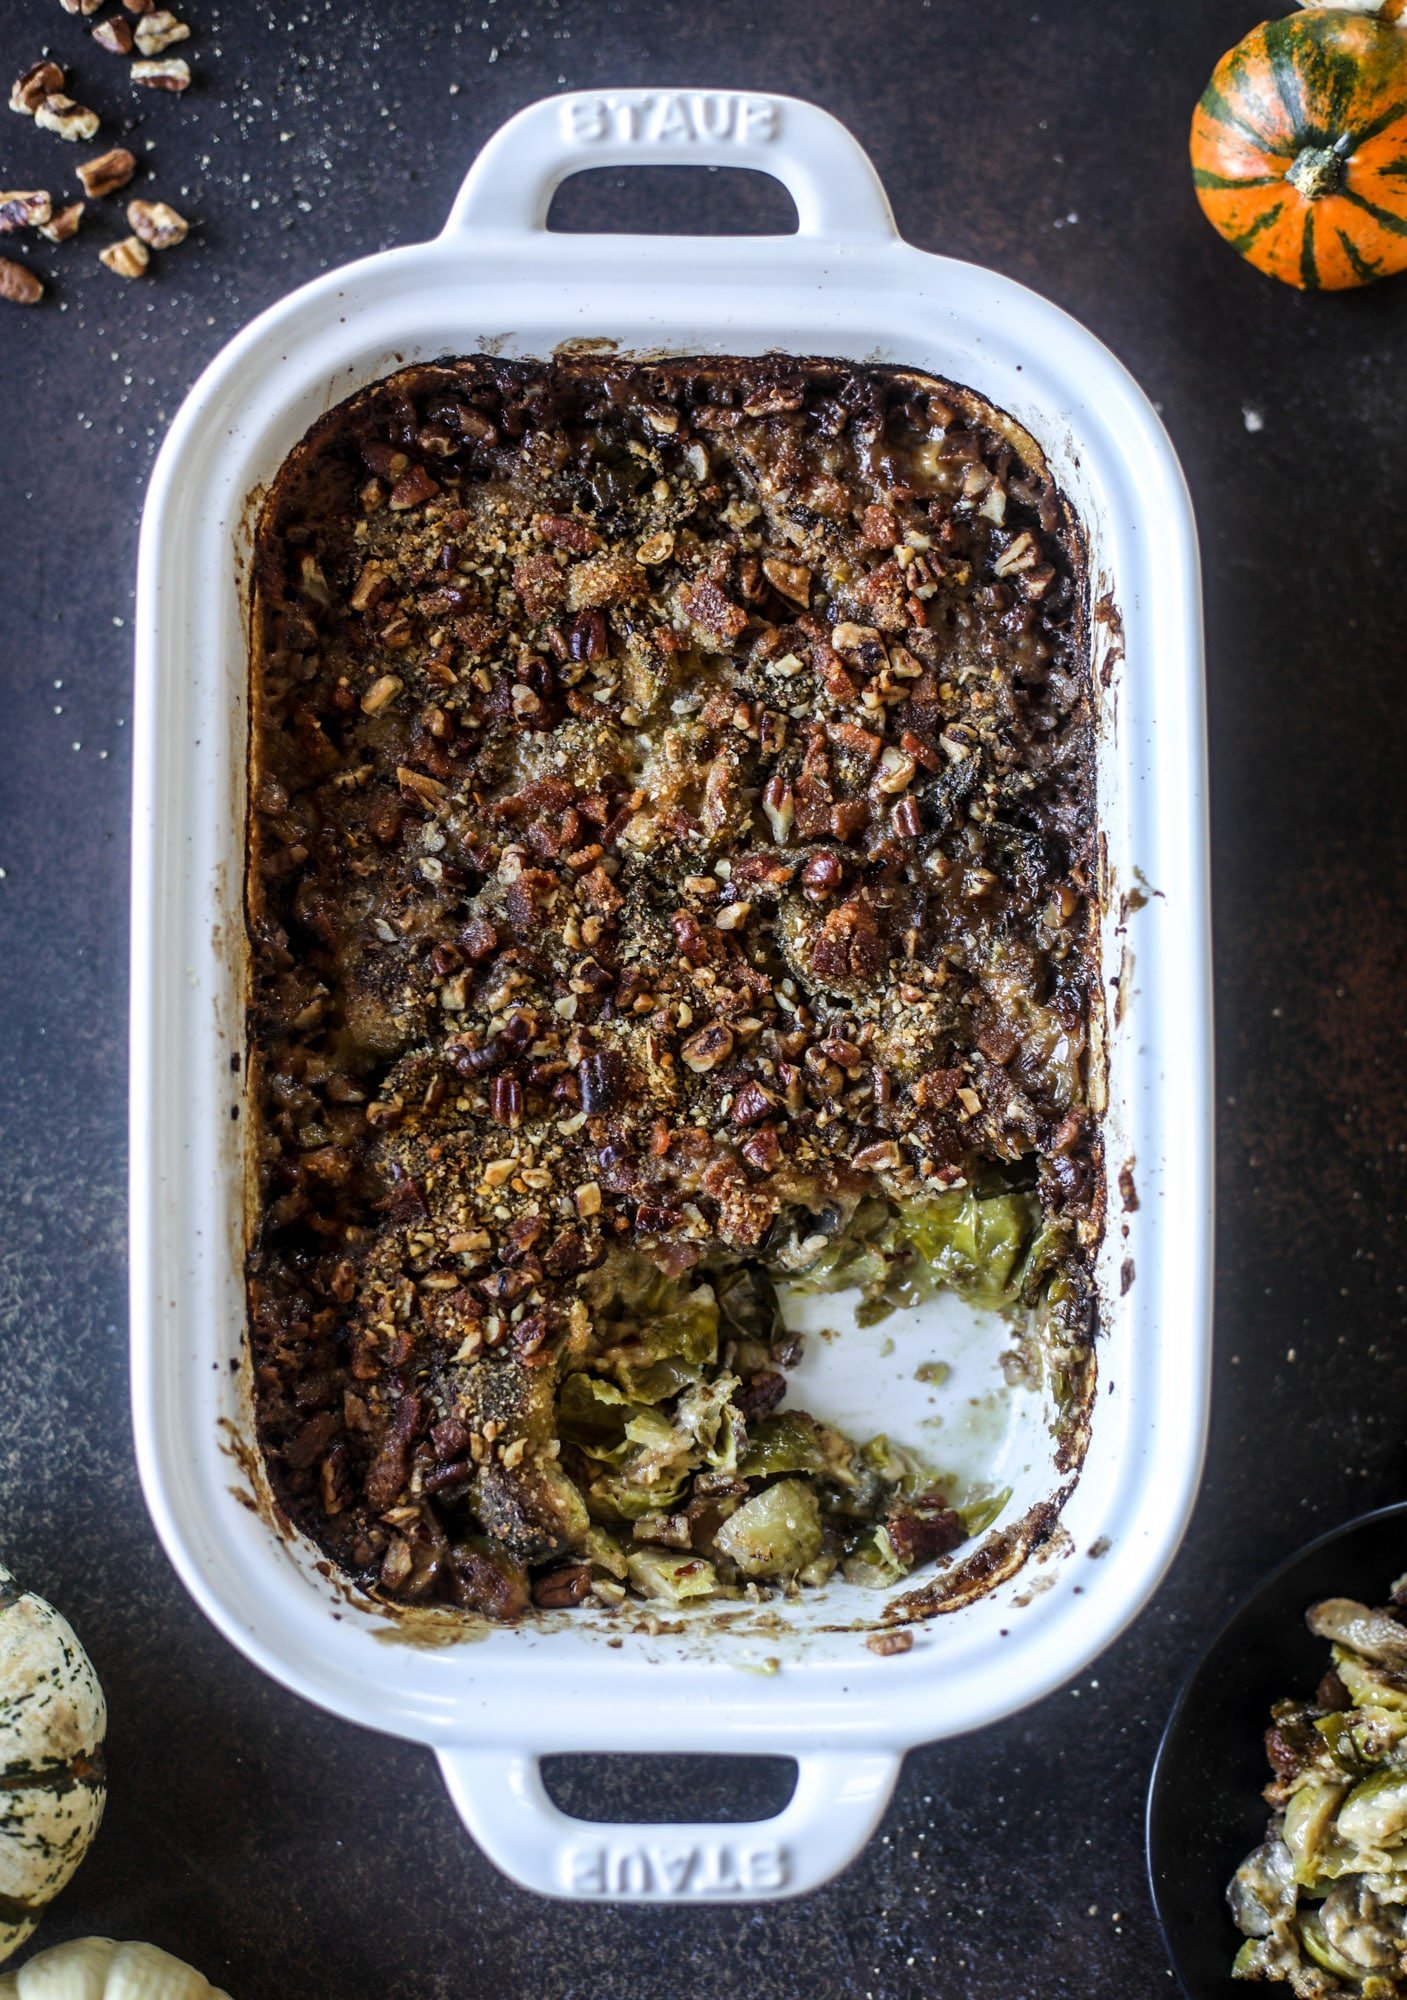 This brussels sprouts gratin is heaven in a dish! It's super flavorful, delicious and comes together to create a fabulous side dish for Thanksgiving or the holidays. Pancetta and cheese turn this in to flavor town - you won't be able to stop eating it! I howsweeteats.com #brusselssprouts #gratin